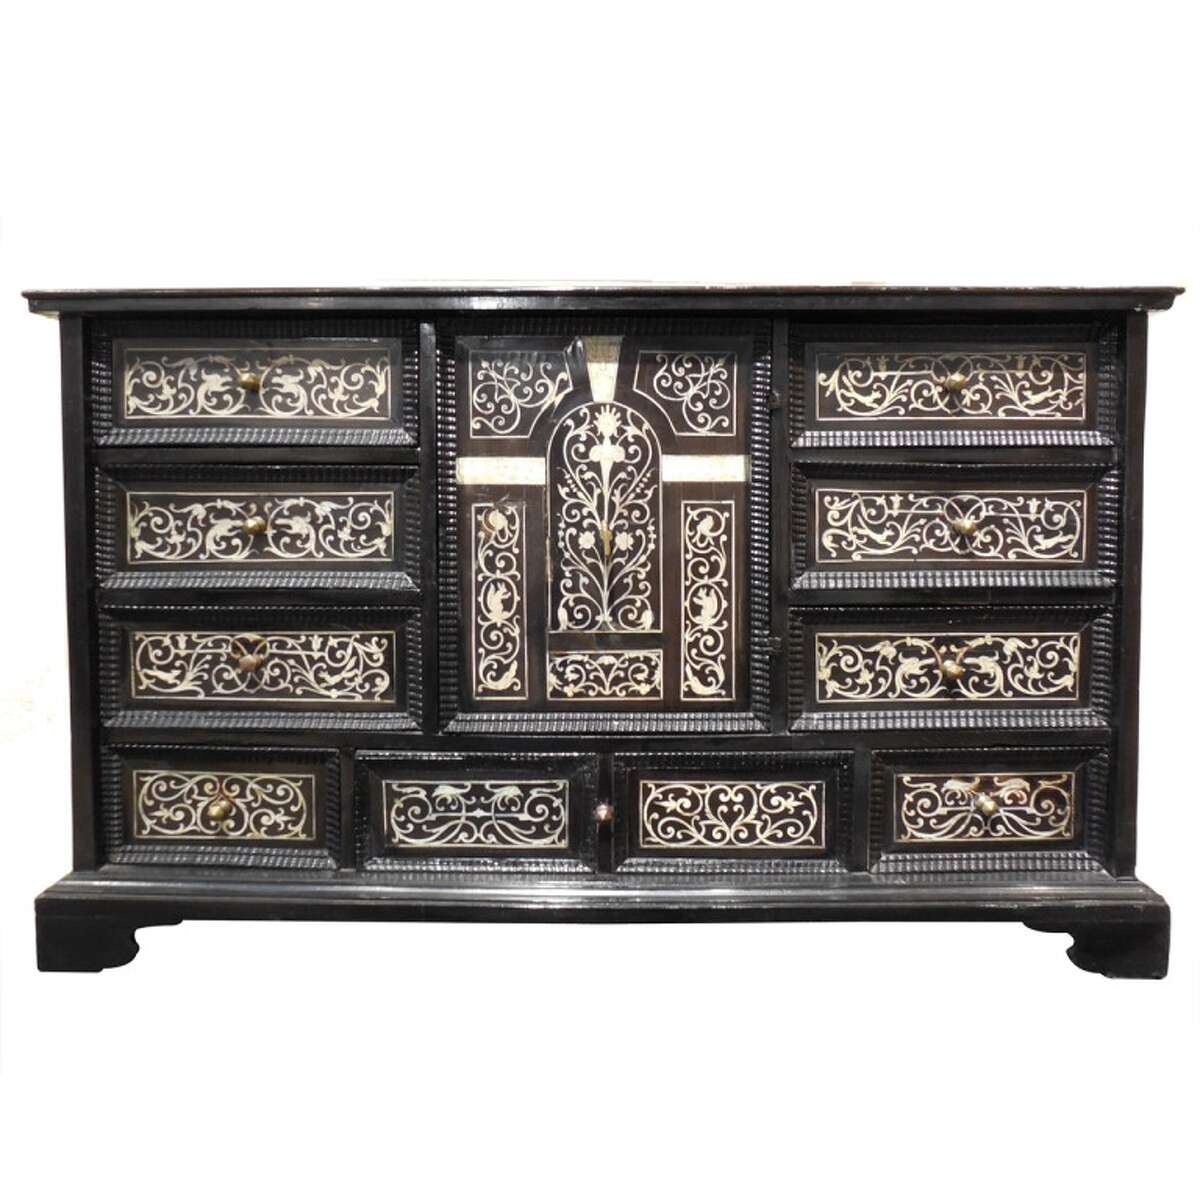 An 18th-century Italian ebony cabinet with ivory inlay from Houston Antiques & Art & Design Show 2014 exhibitor Vandeuren Gallery of Los Angeles